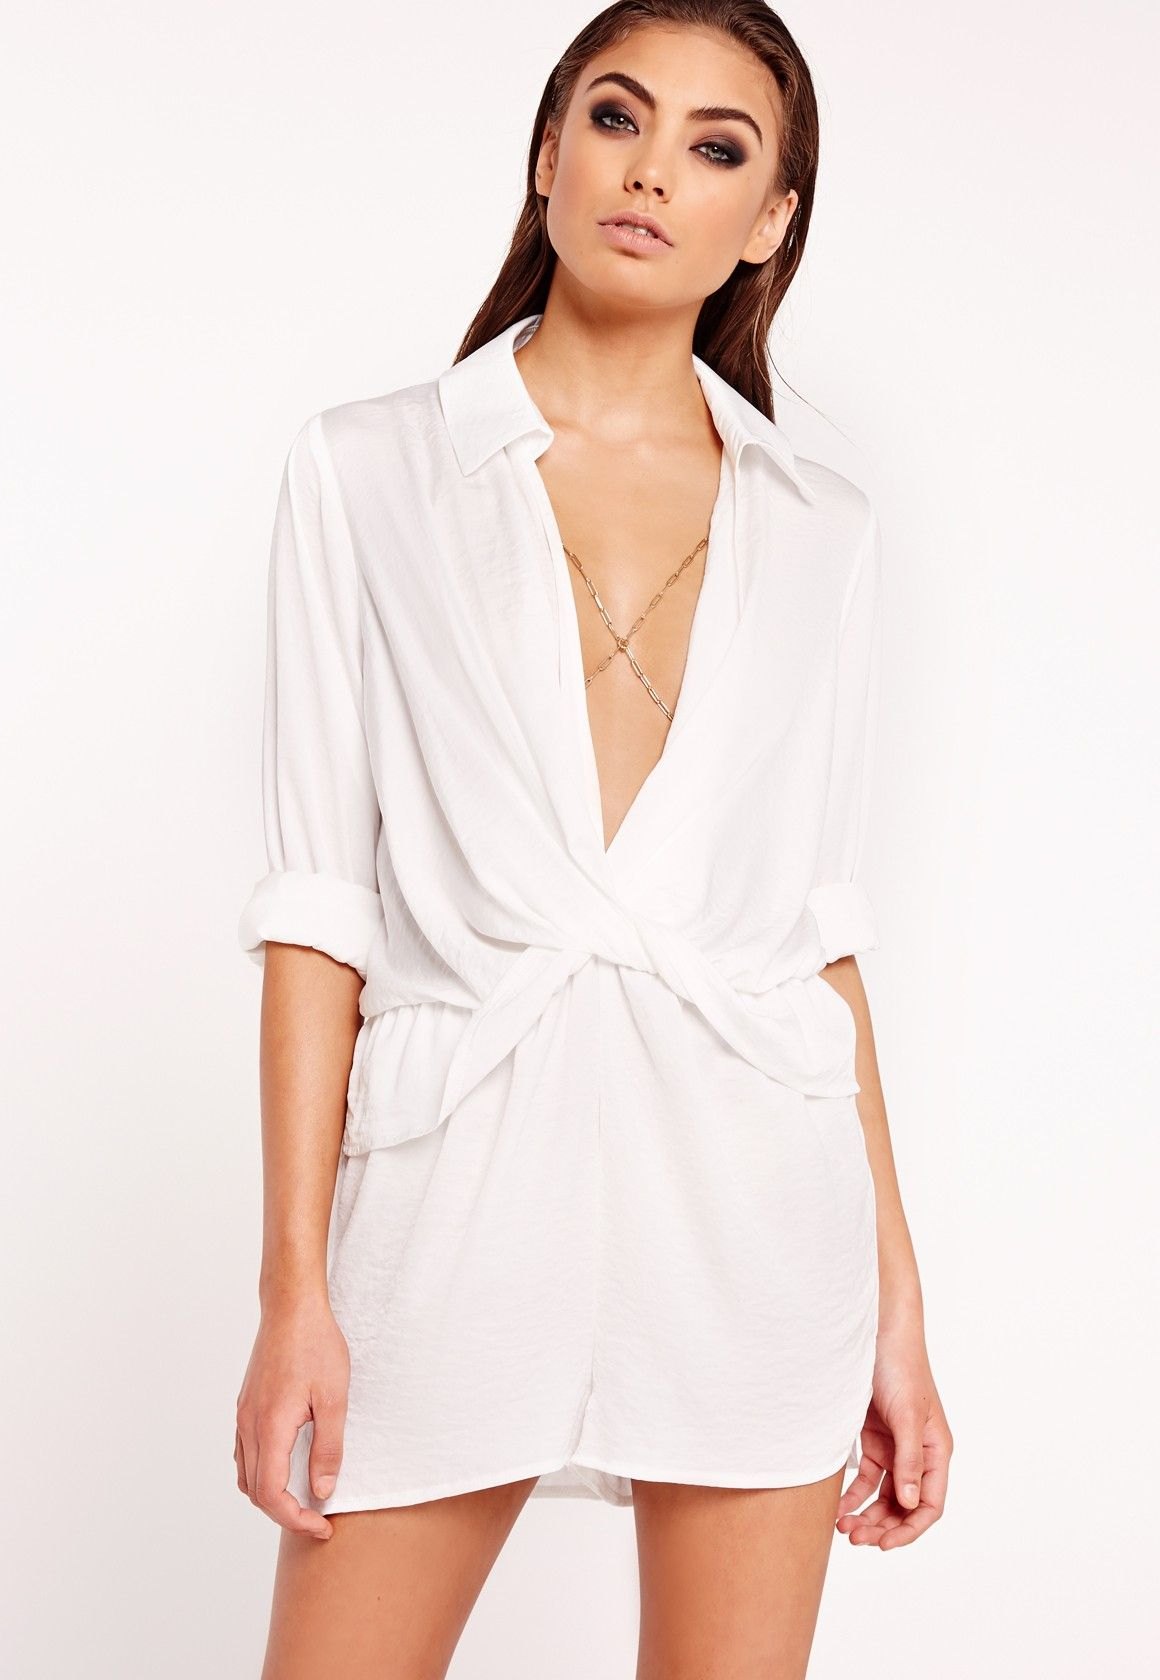 82093174b8 Missguided - Peace Love Satin Wrap Playsuit White